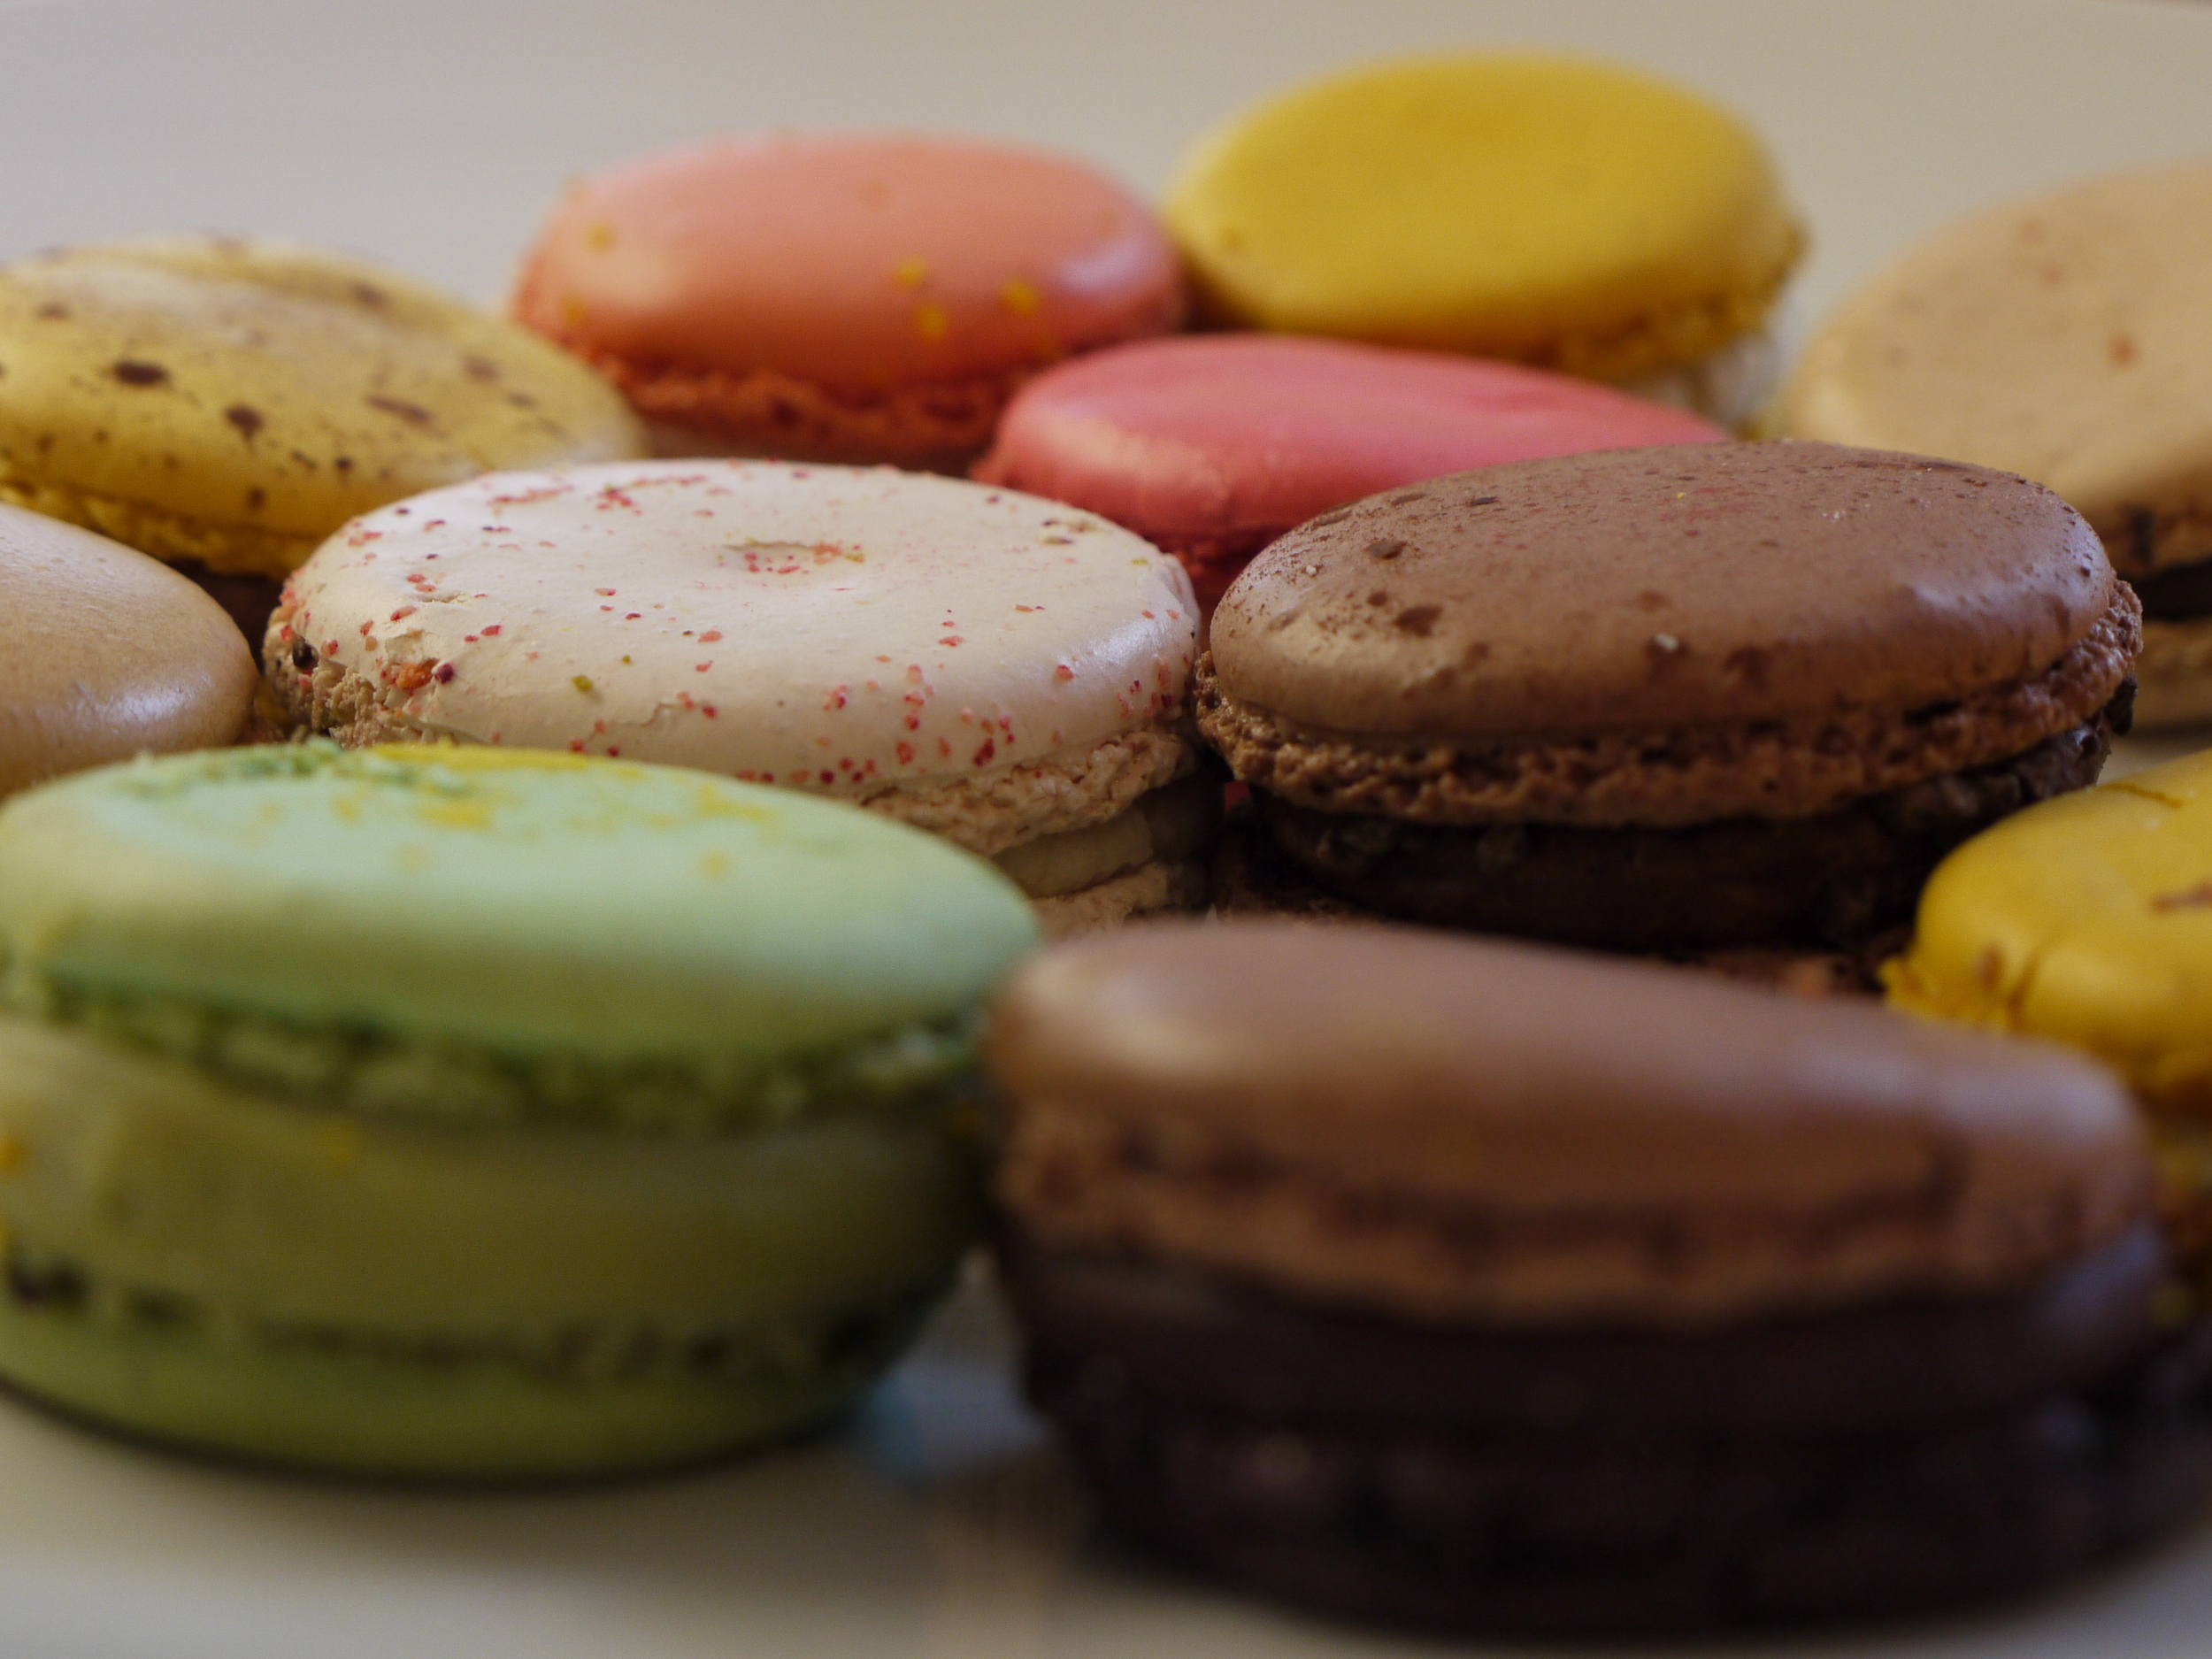 Pierre Herme; Paris, France; Macaroon